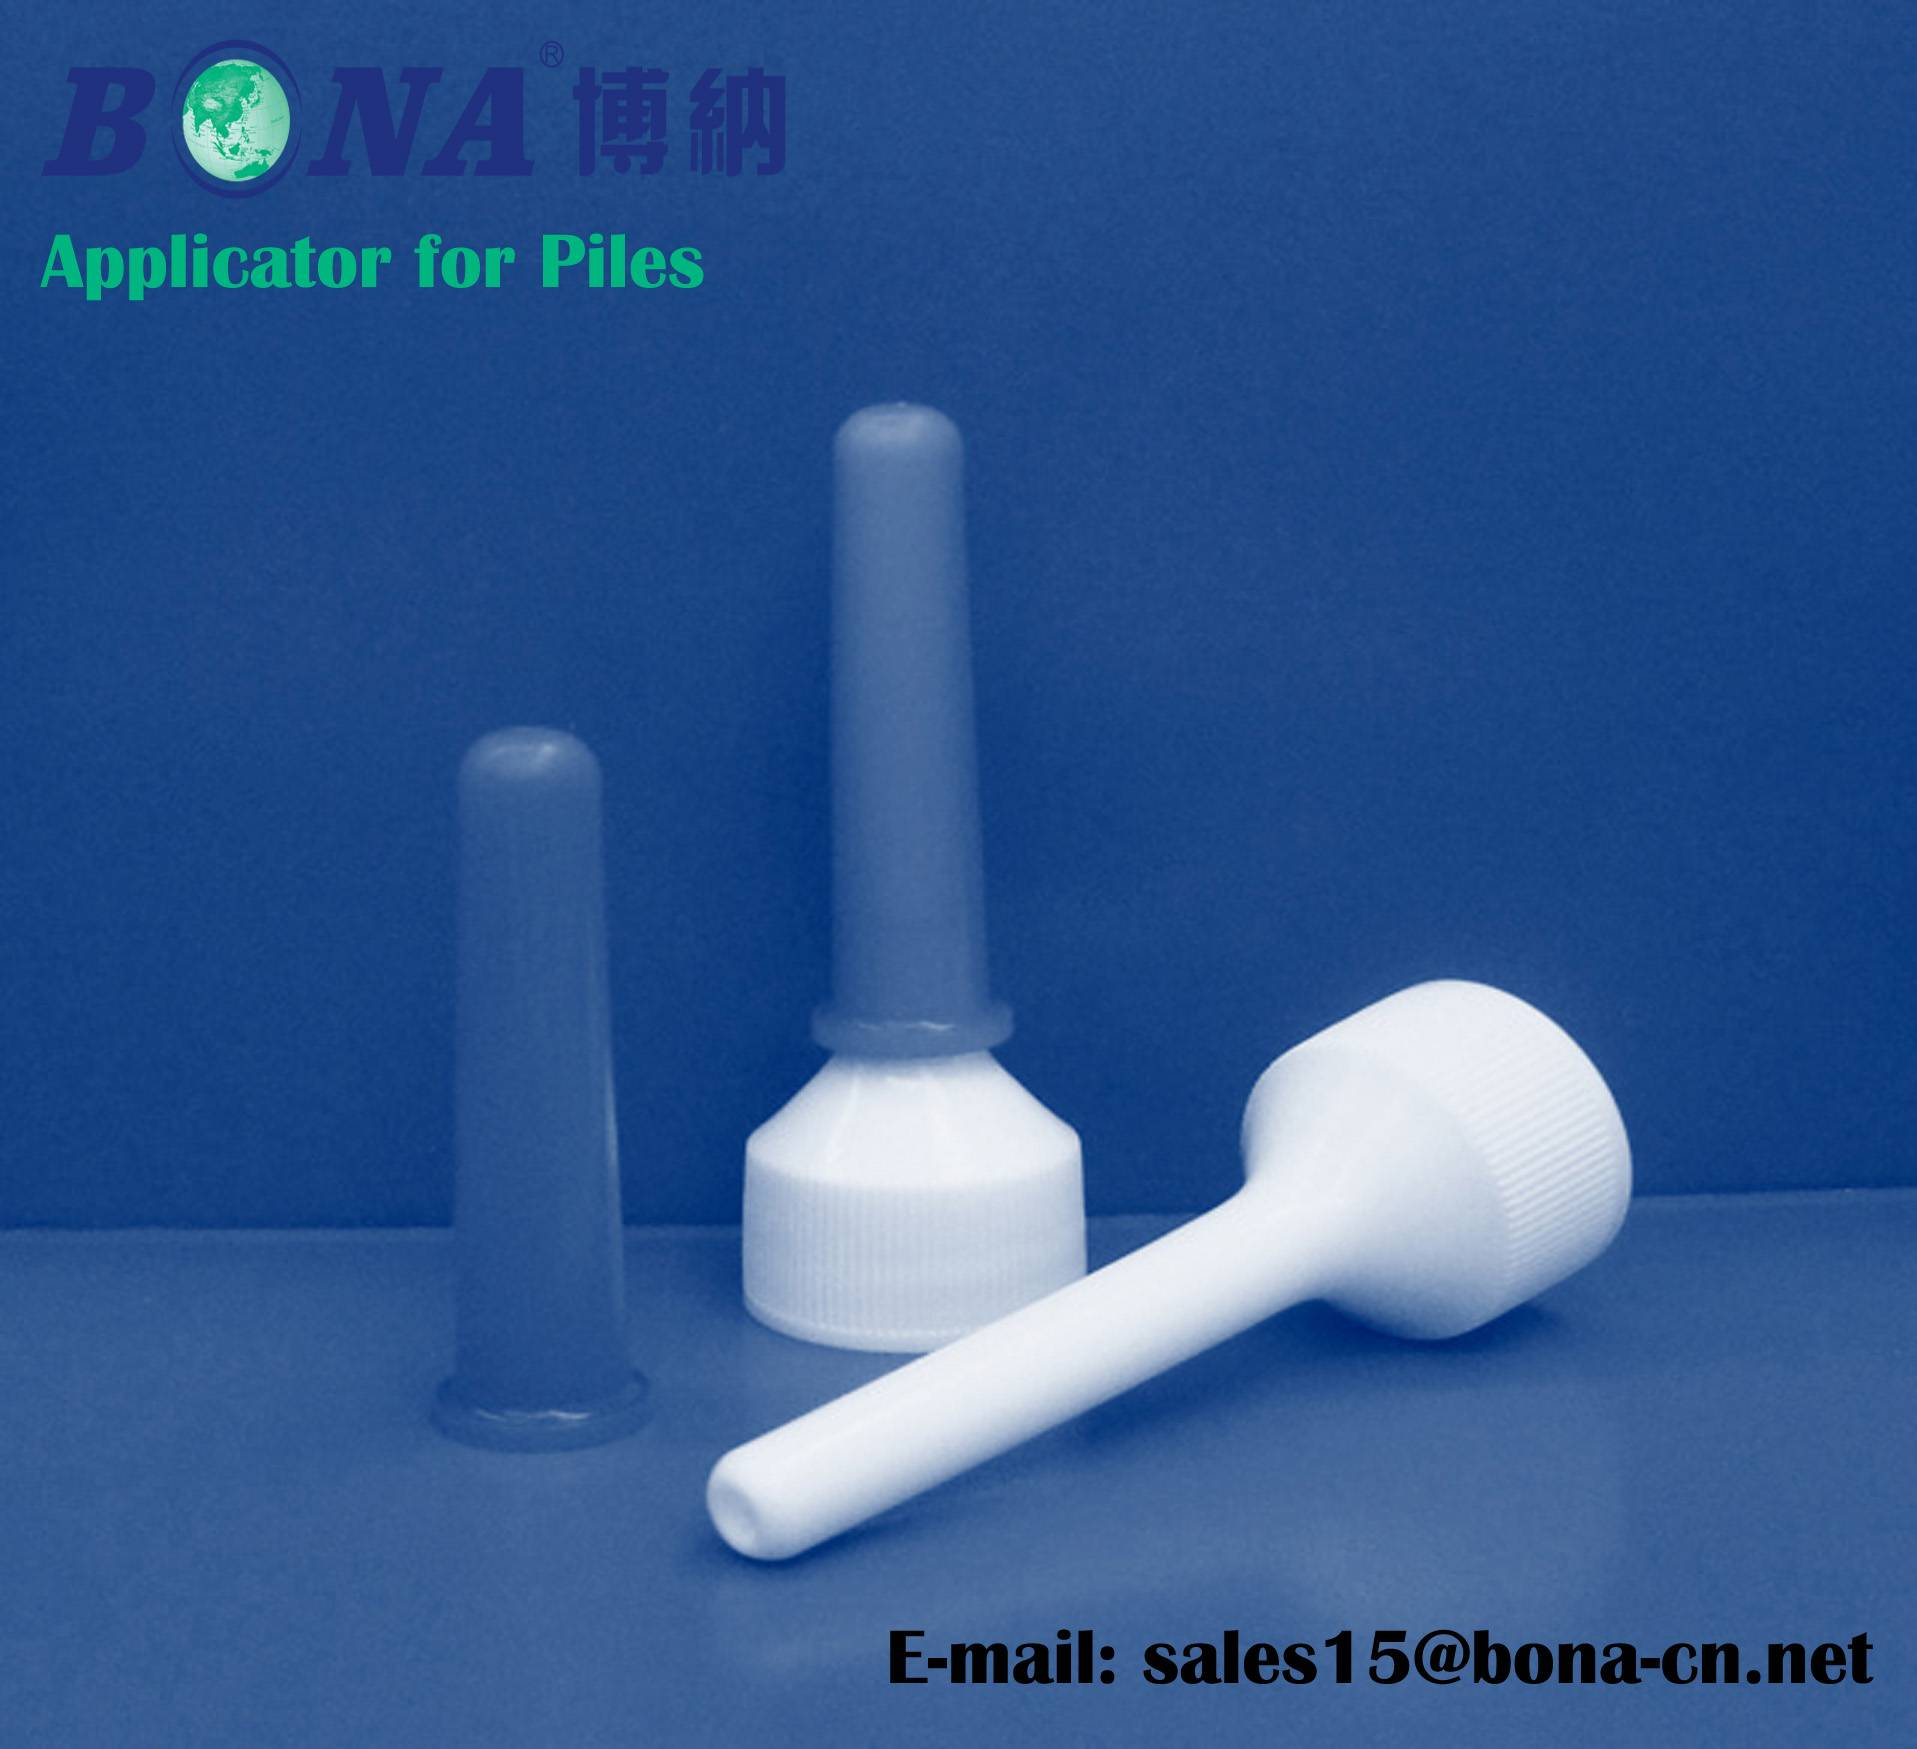 Applicator for Piles